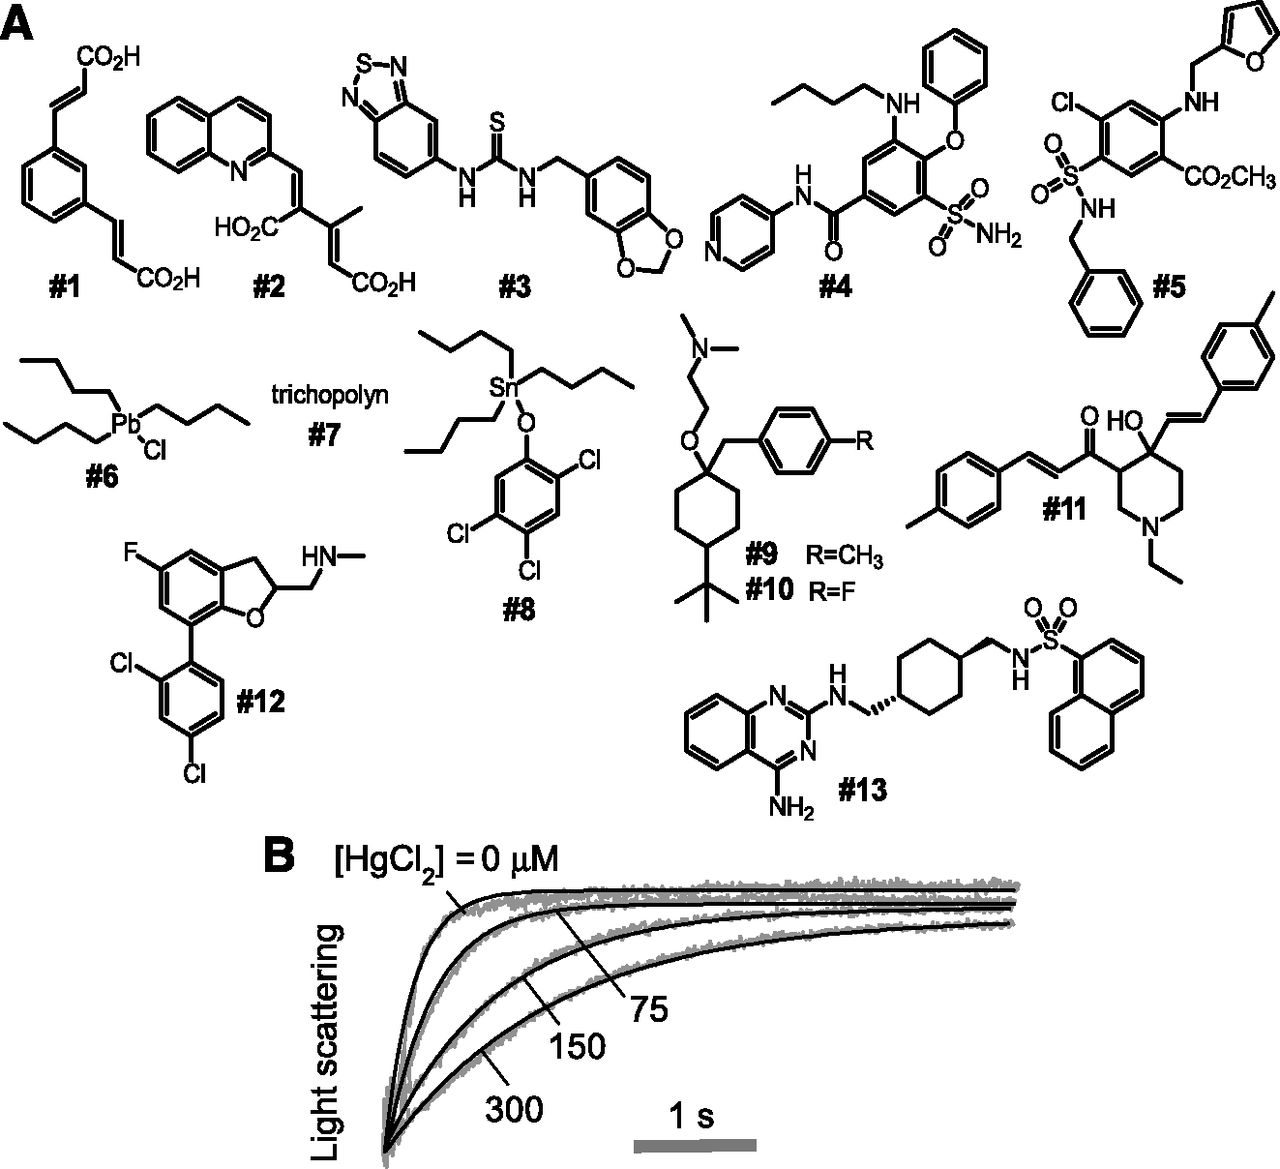 Experimental Evaluation Of Proposed Small Molecule Inhibitors Of Water Channel Aquaporin 1